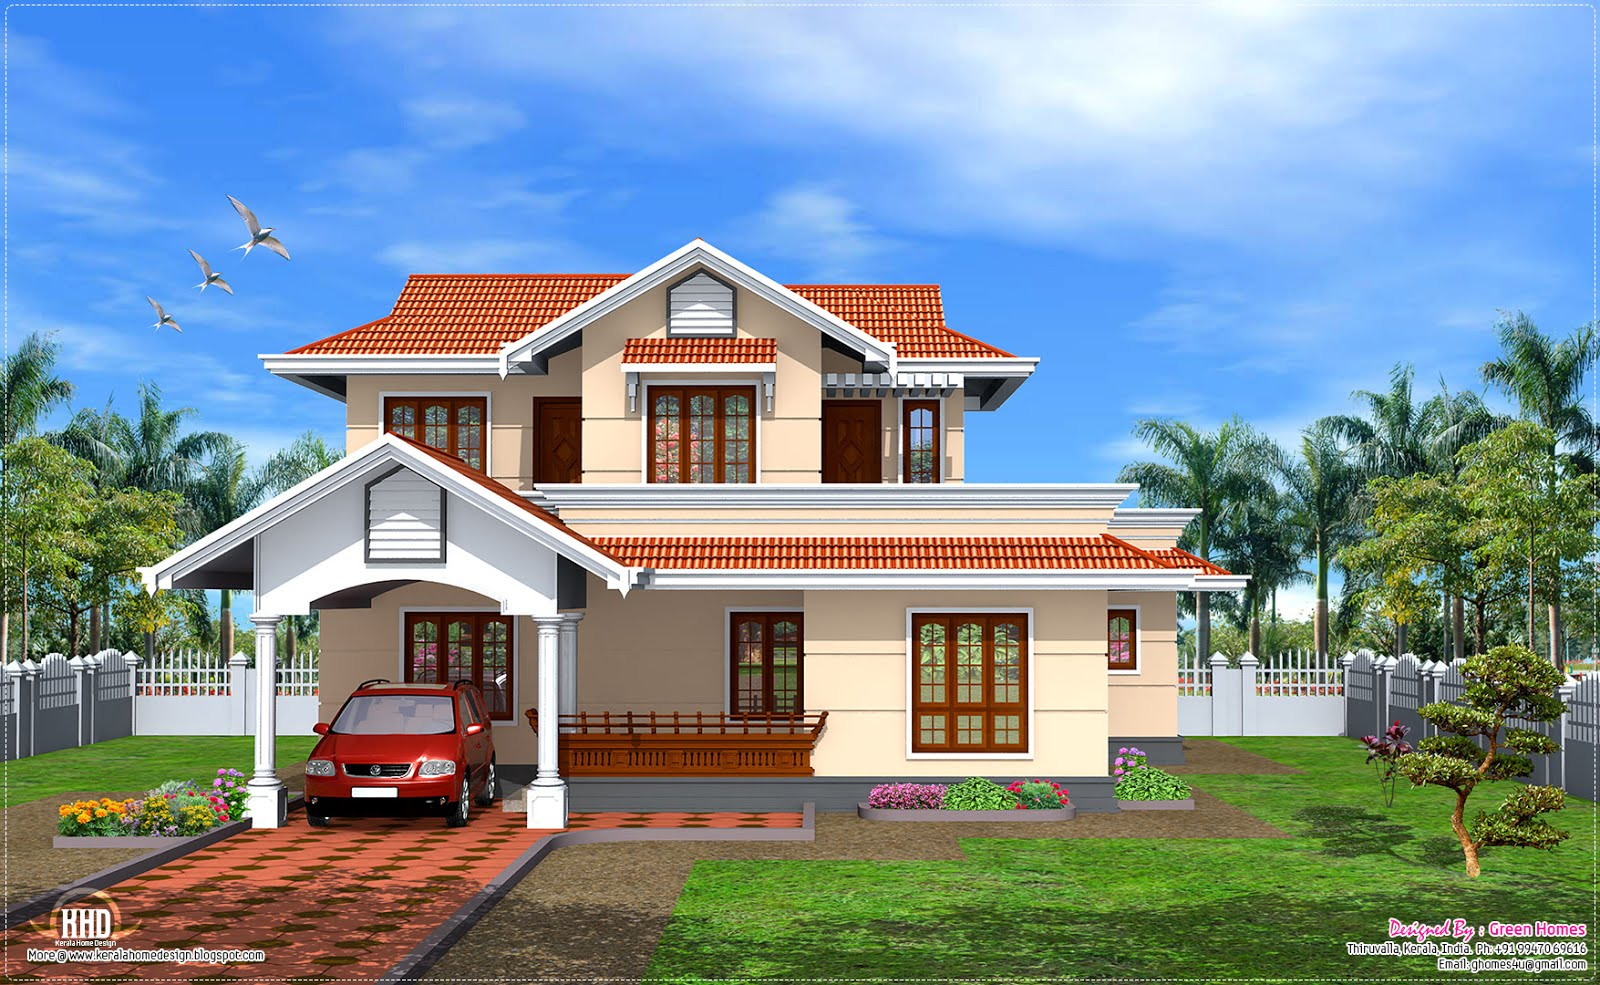 Kerala House Photos http://www.keralahousedesigns.com/2013/02/kerala-model-1900sqft-home.html